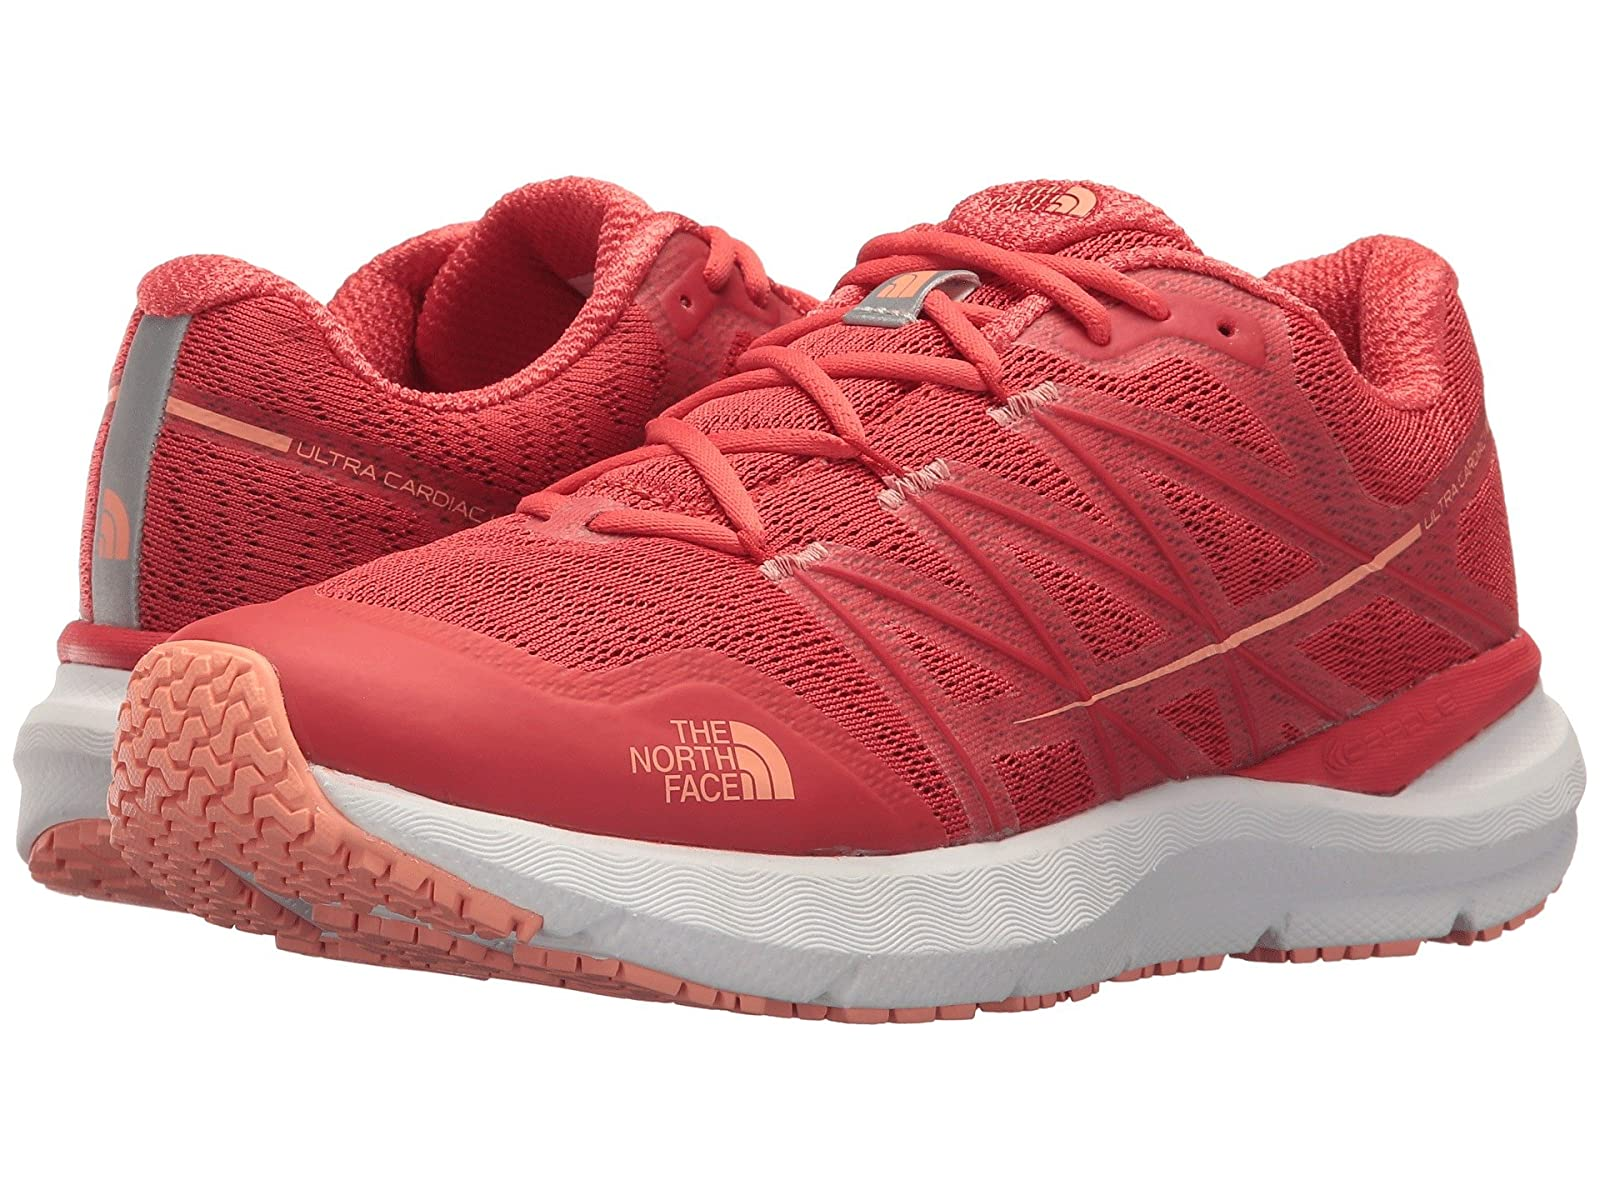 The North Face Ultra Cardiac IICheap and distinctive eye-catching shoes